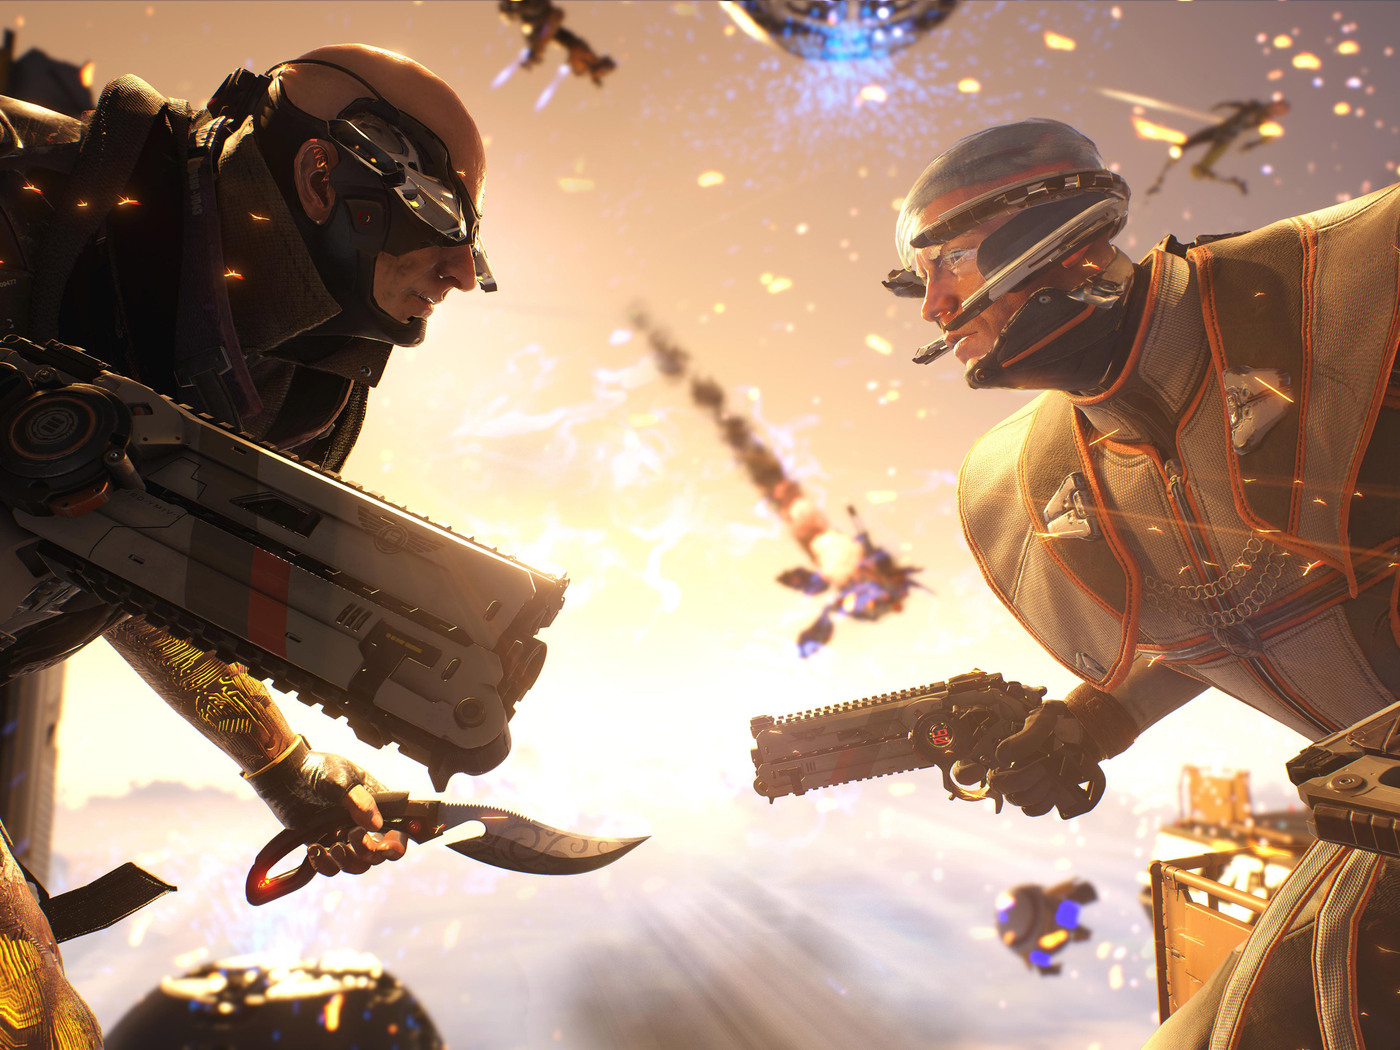 lawbreakers-gunslingers-game-5k-iy.jpg